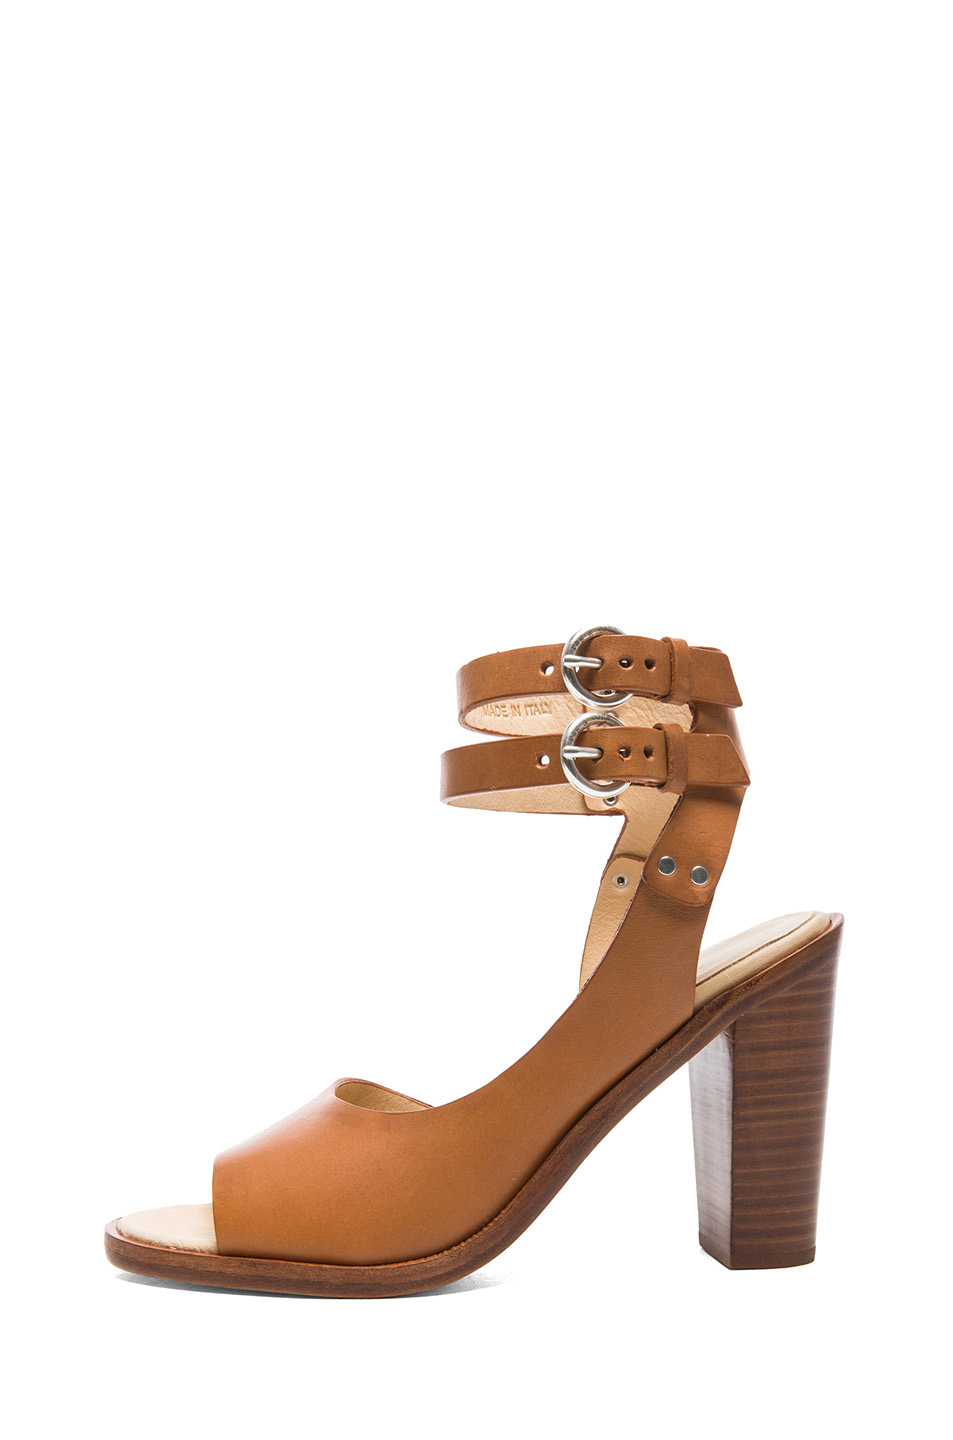 rag & bone|Tulsa Sandals in Tan